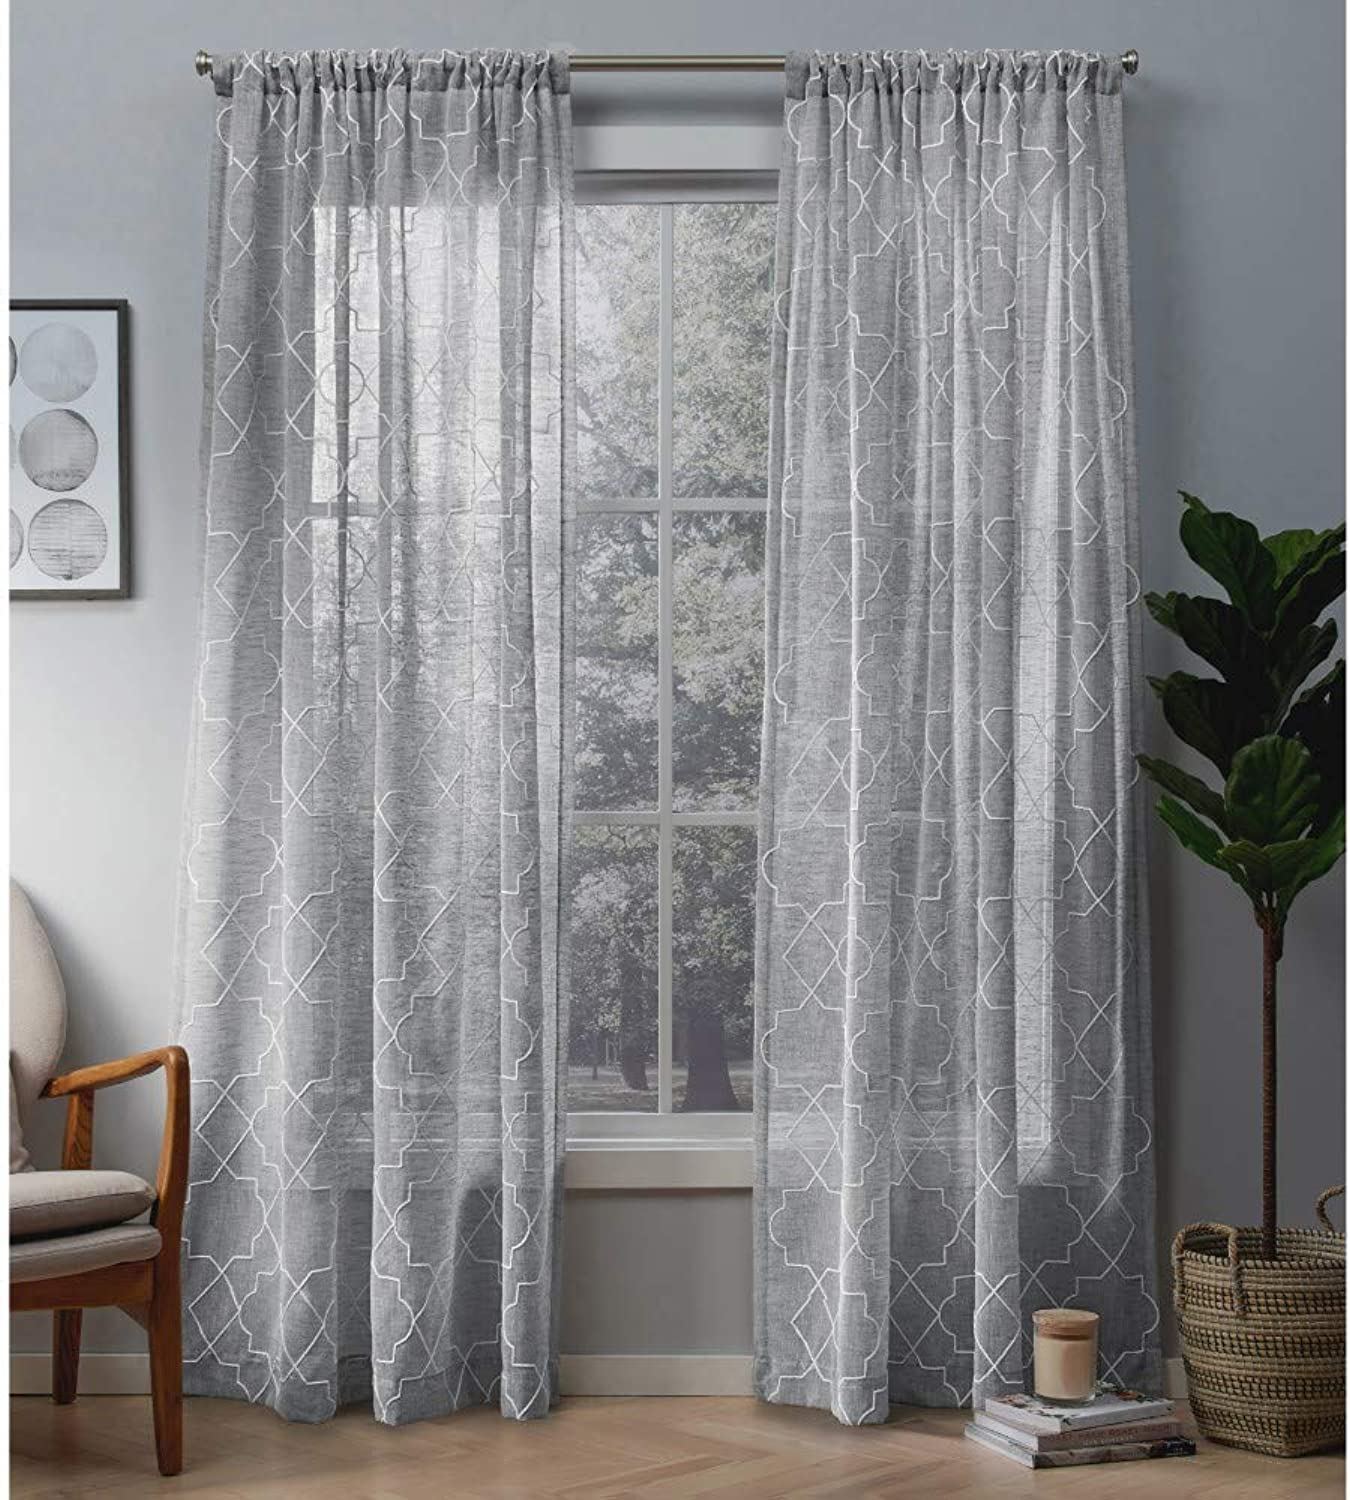 Exclusive Home Curtains Cali Embroidered Sheer Window Curtain Panel Pair with Rod Pocket, 50x108, Dove Grey, 2 Piece